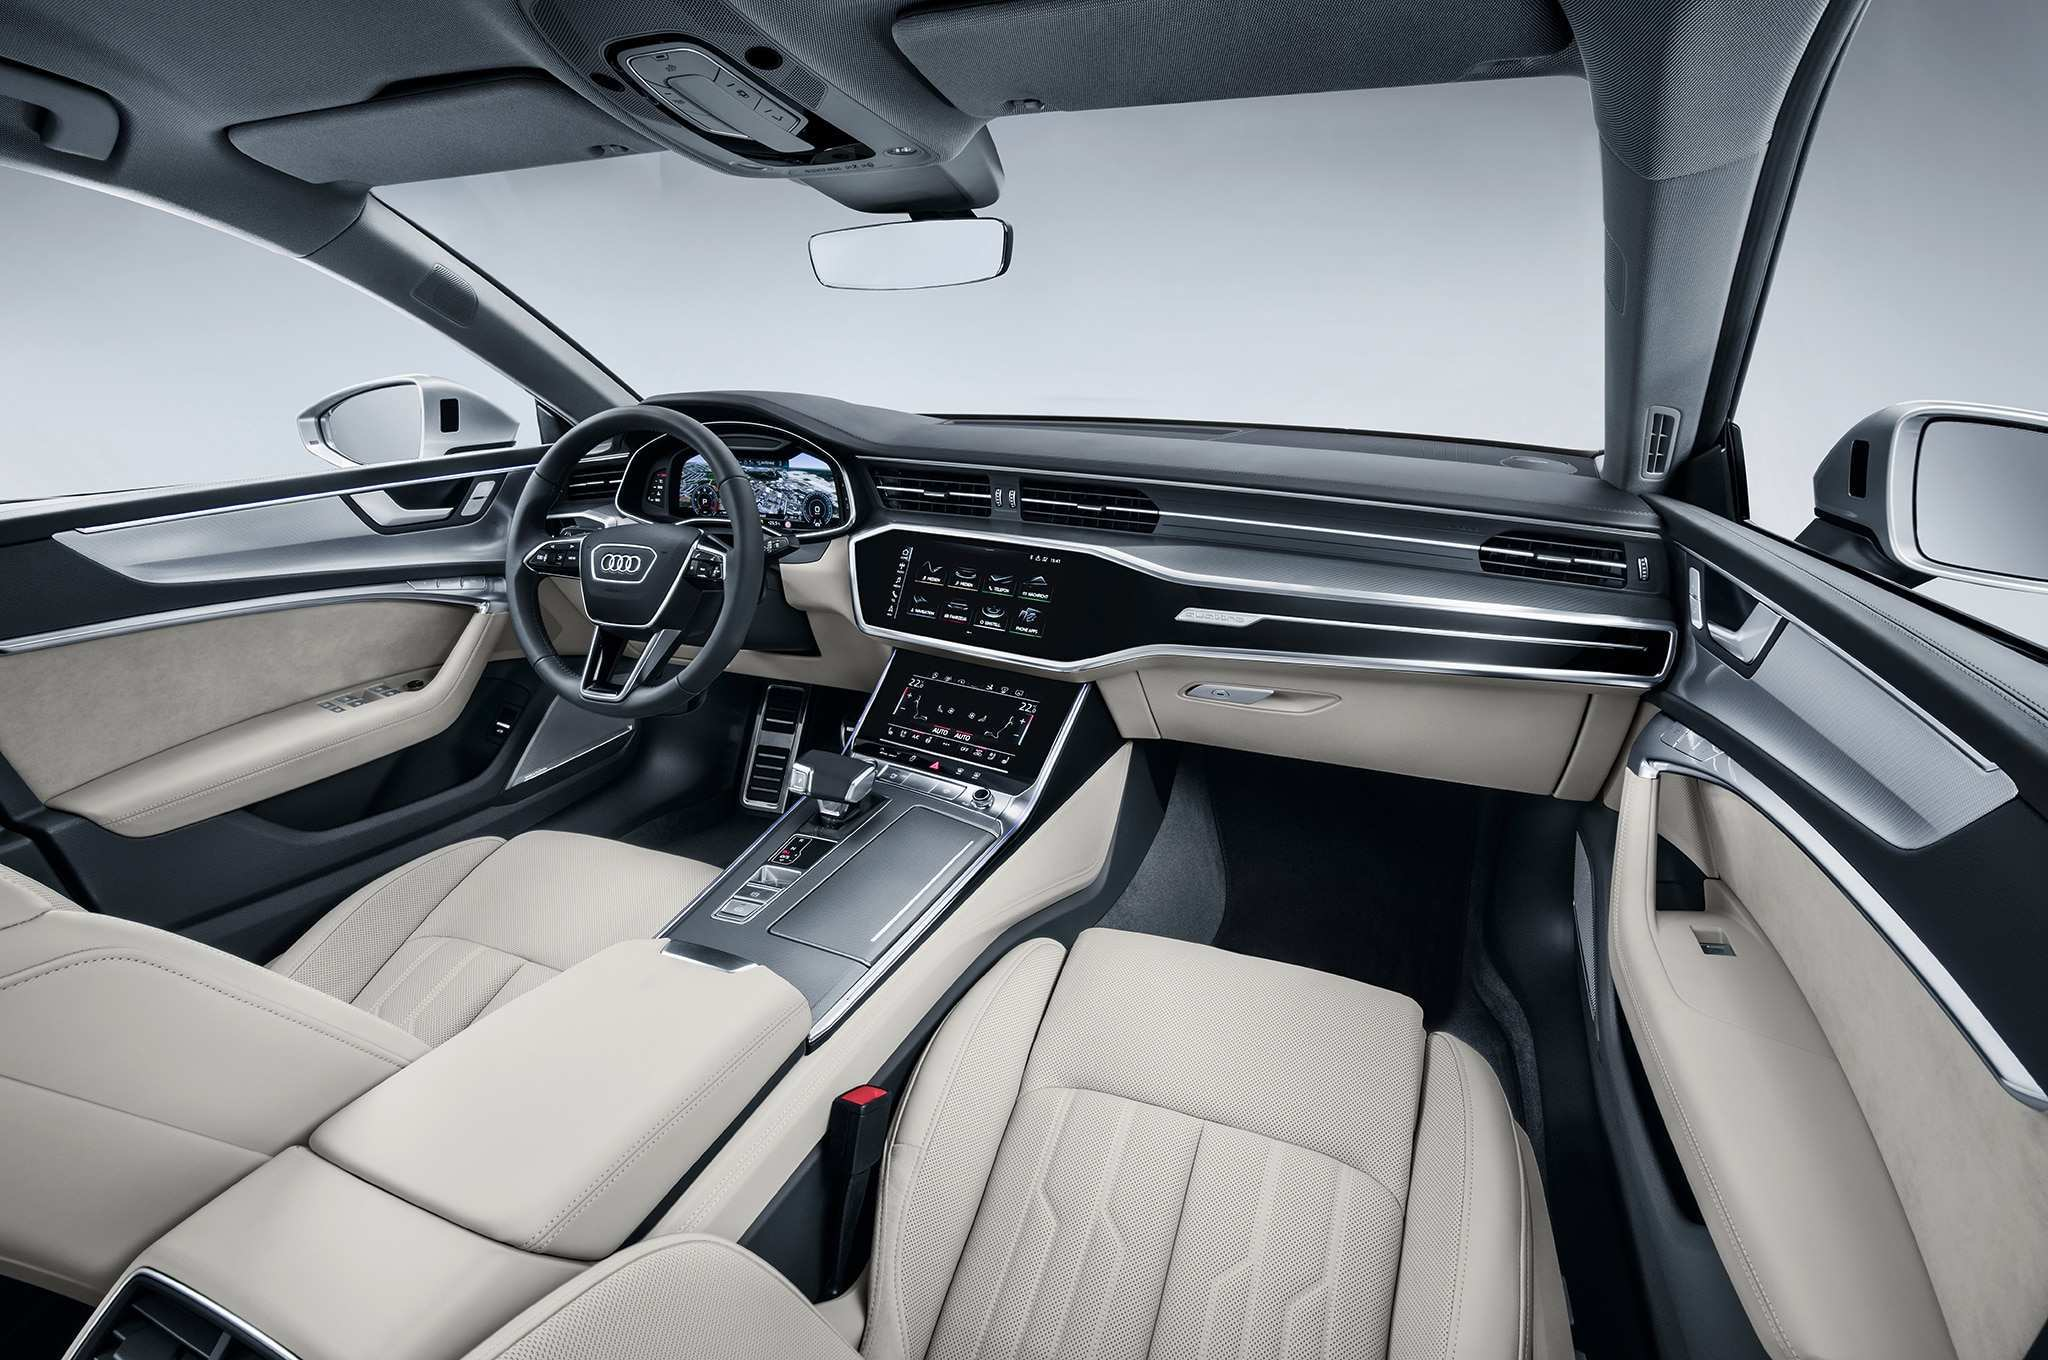 25 All New 2019 Audi A7 Interior Redesign And Review